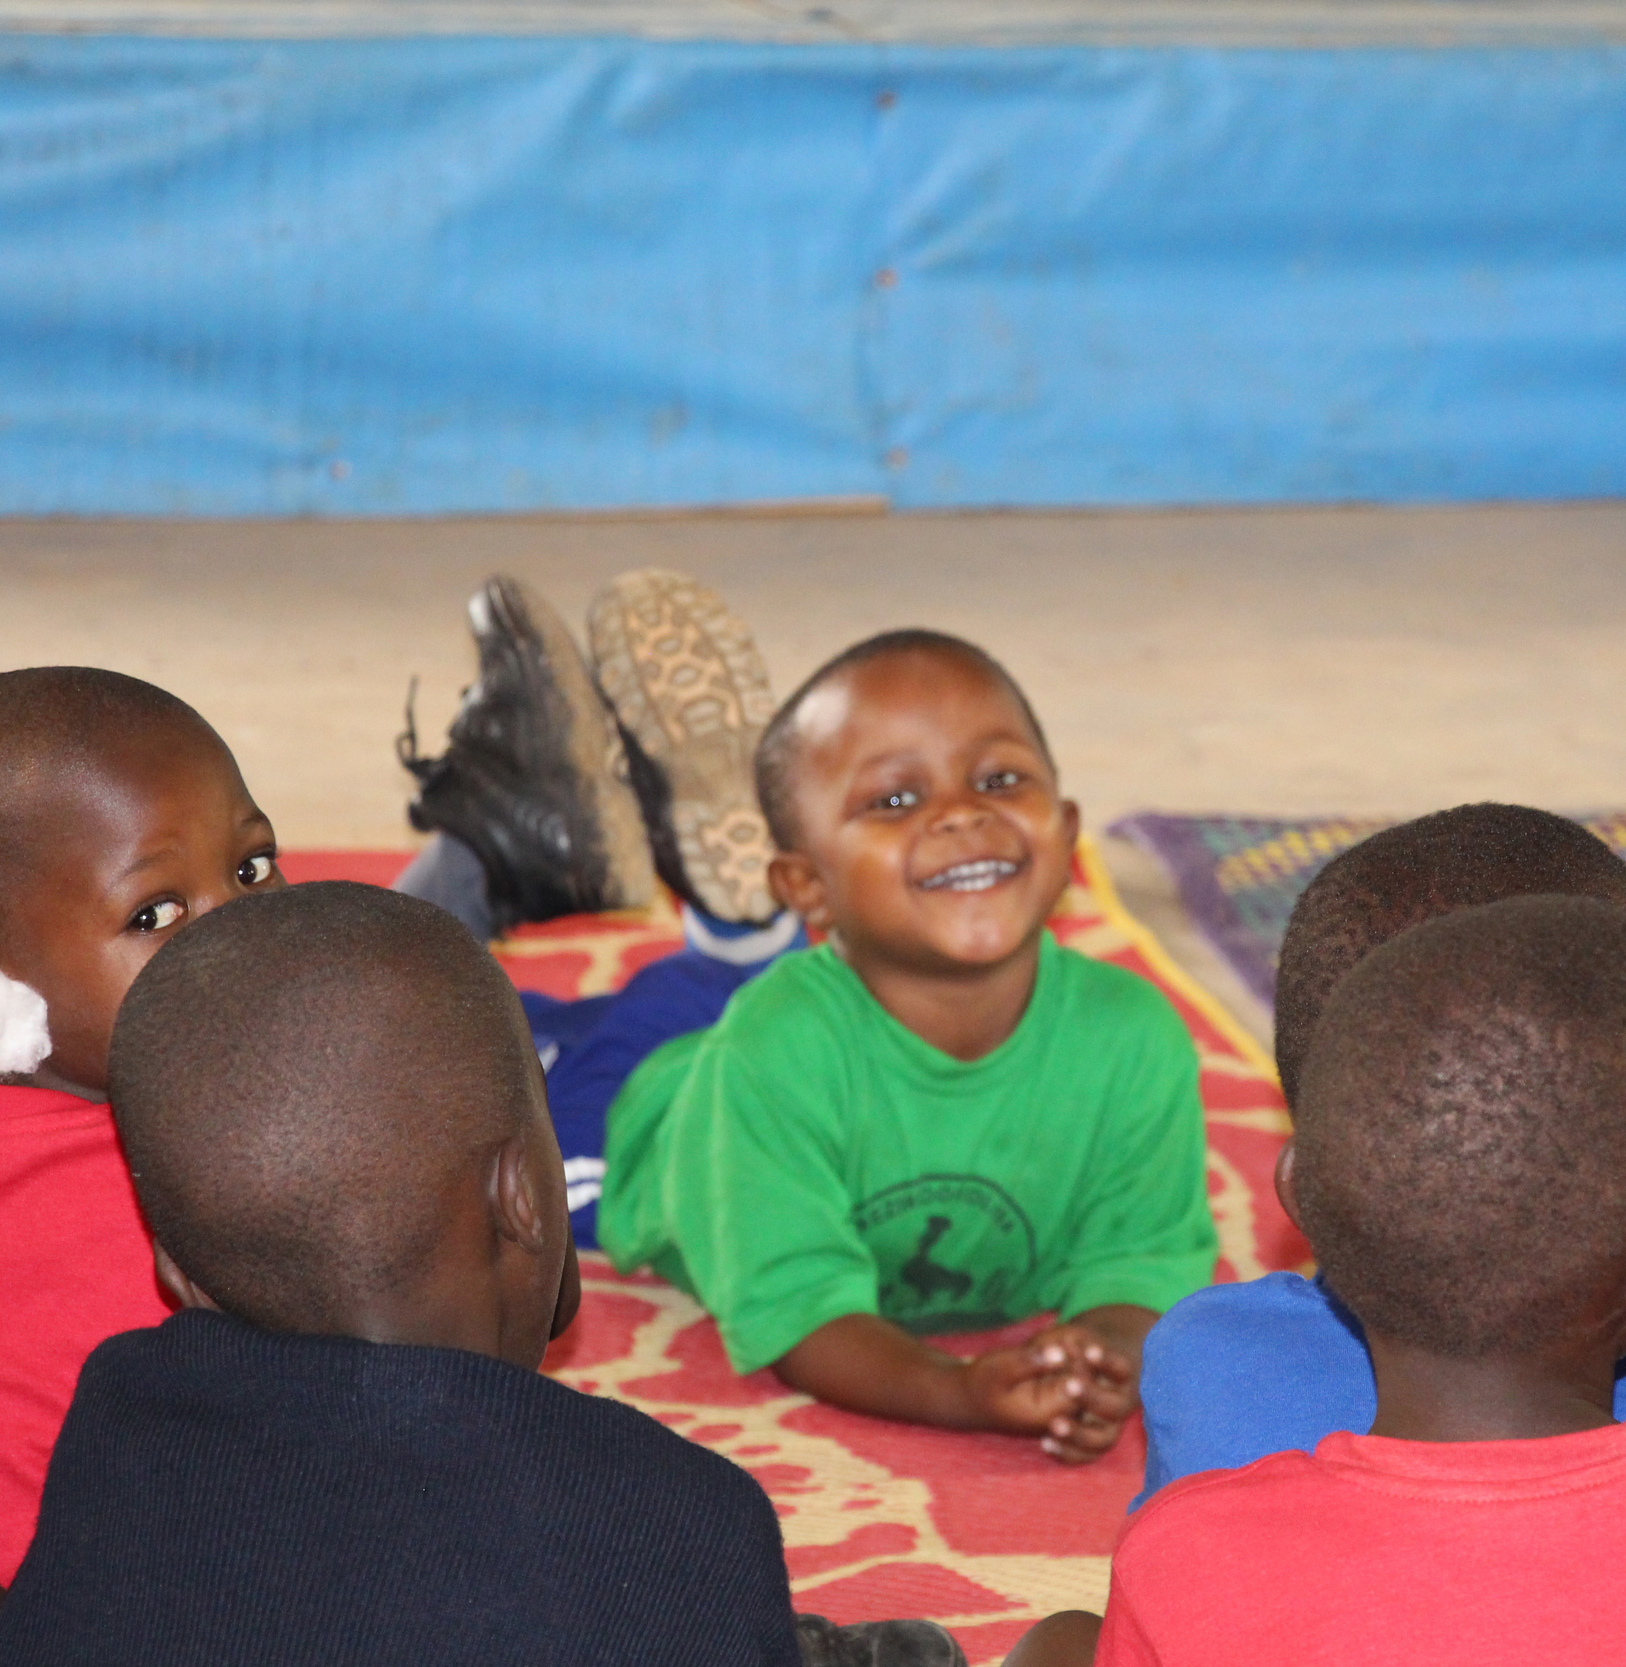 Meet Ricky, our chubby faced, cheeky 3-year-old munchkin. Little Ricky is about as entrenched in the Katuuso community as anyone could possibly be!